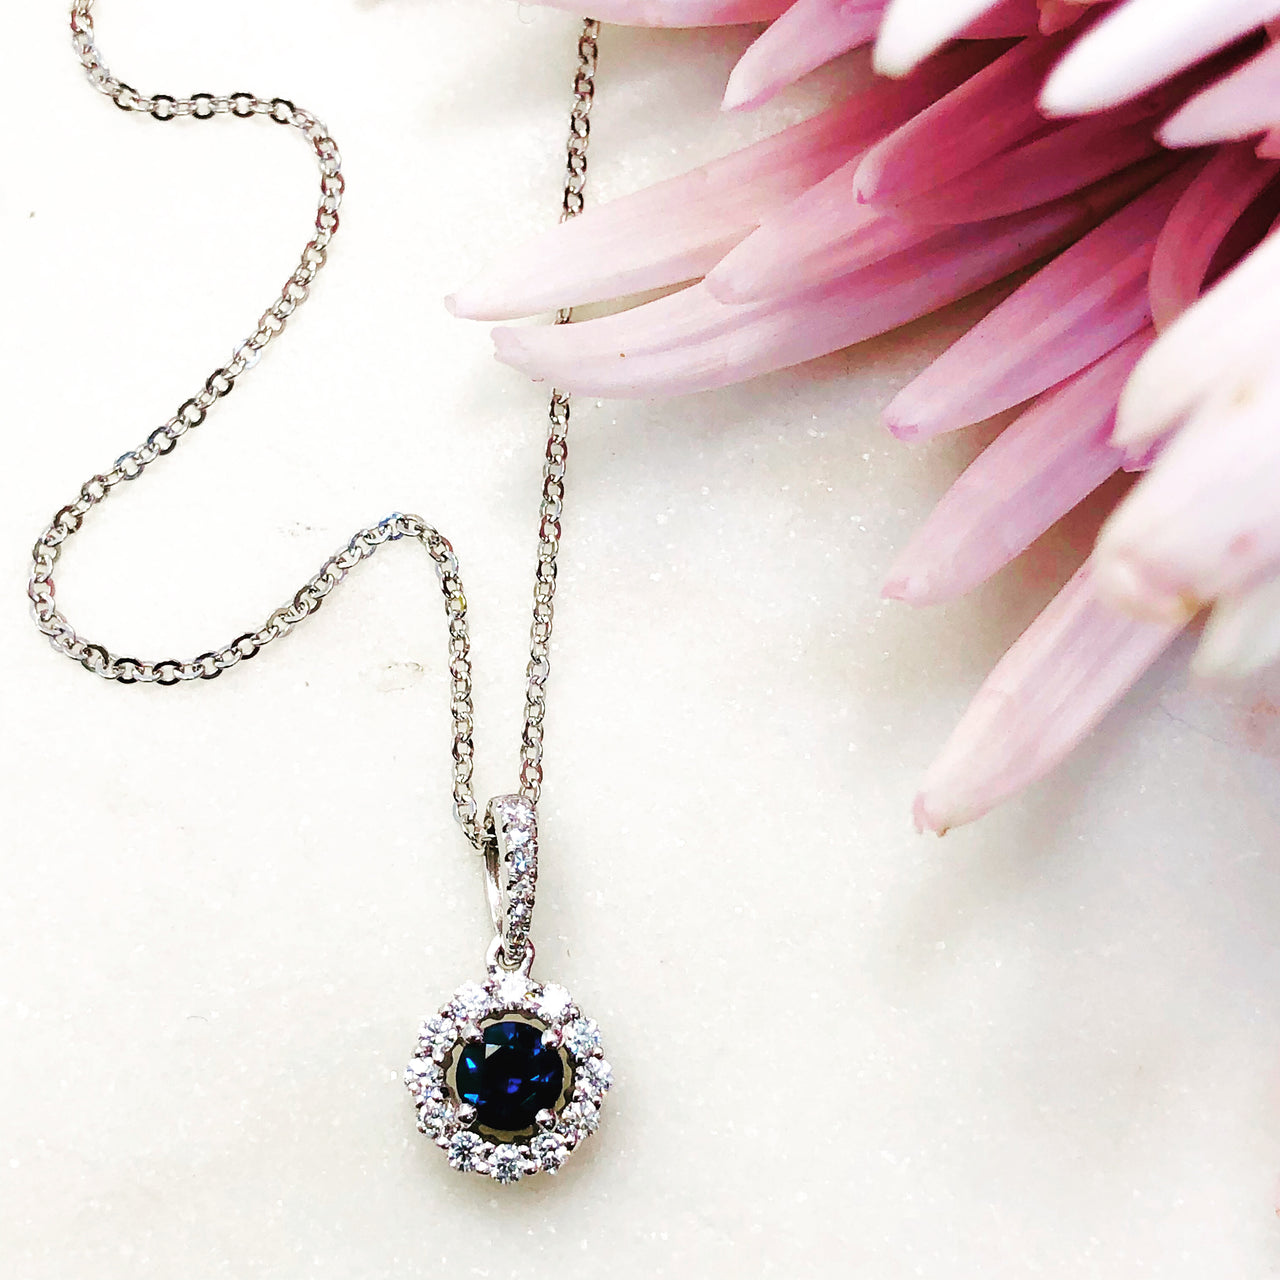 14K White Gold Sapphire and Diamond Necklace.